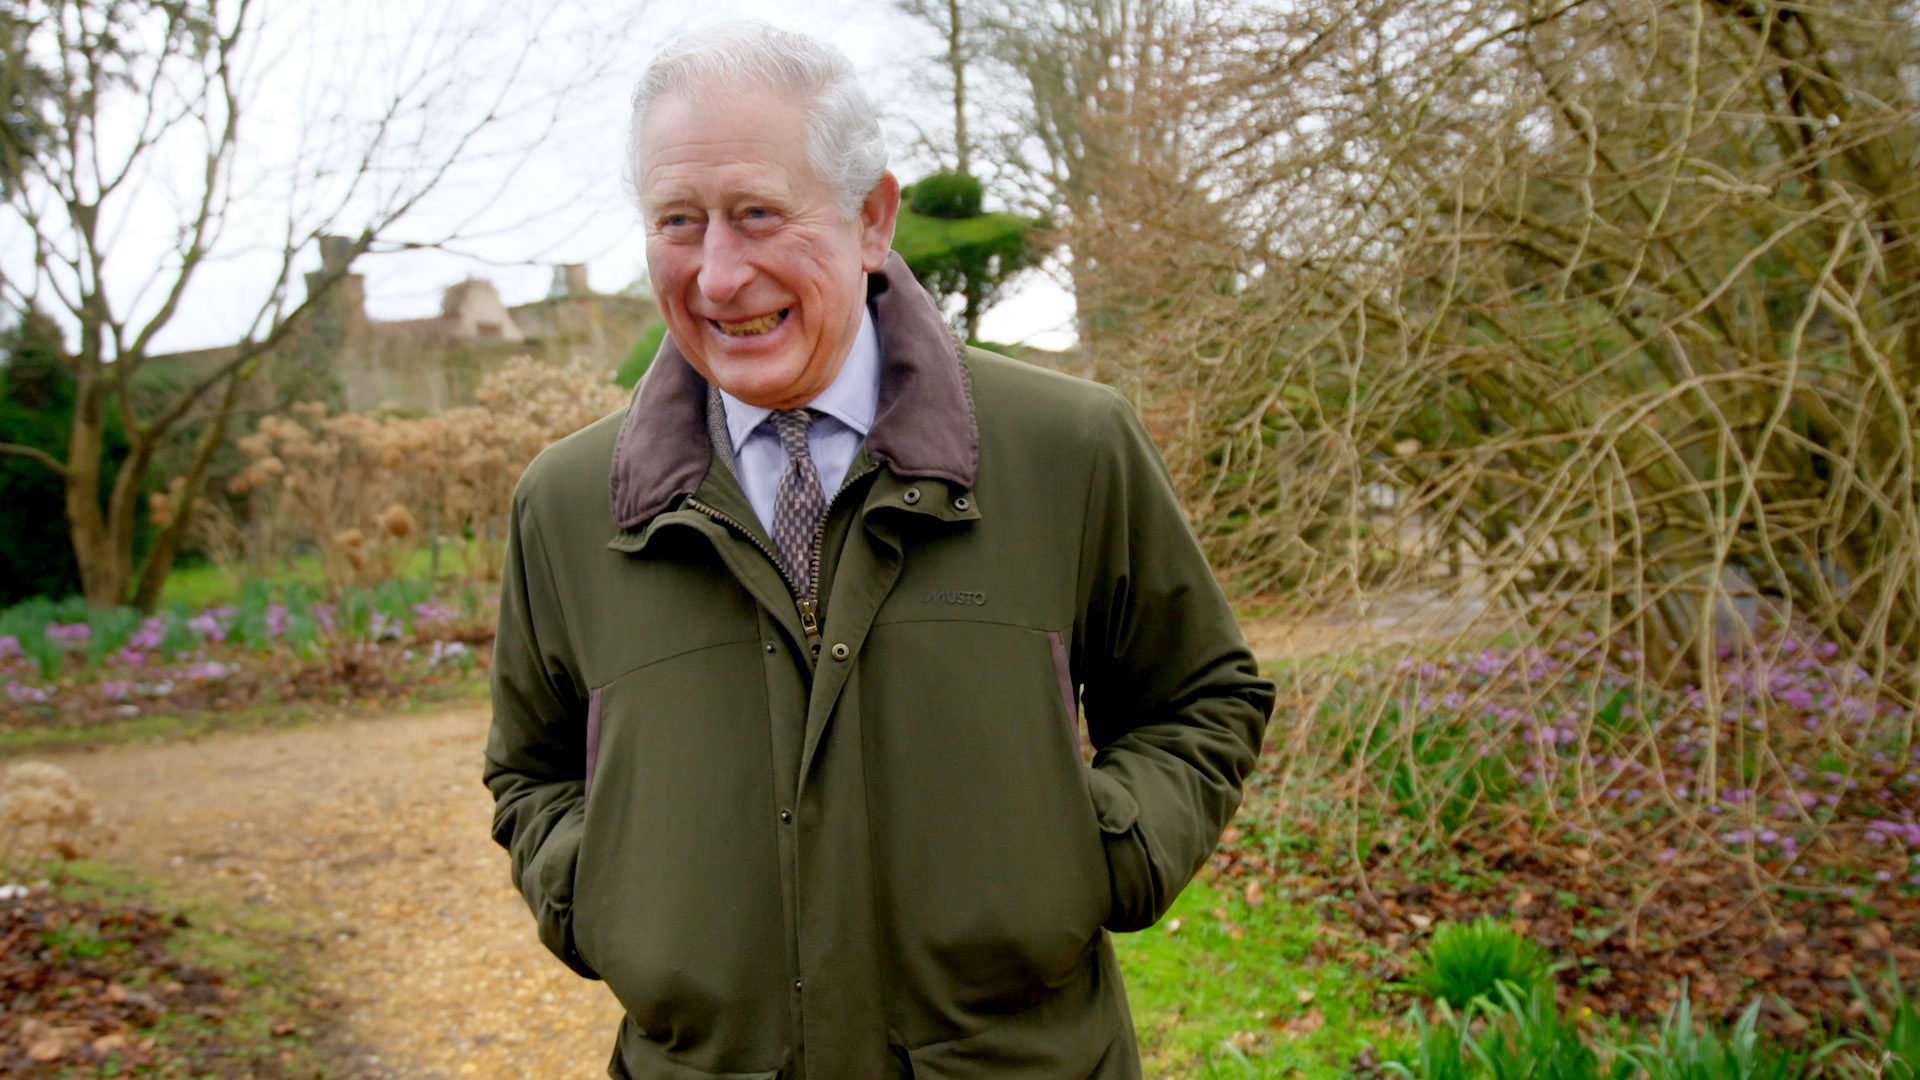 The Prince of Wales in the Duchy of Cornwall documentary